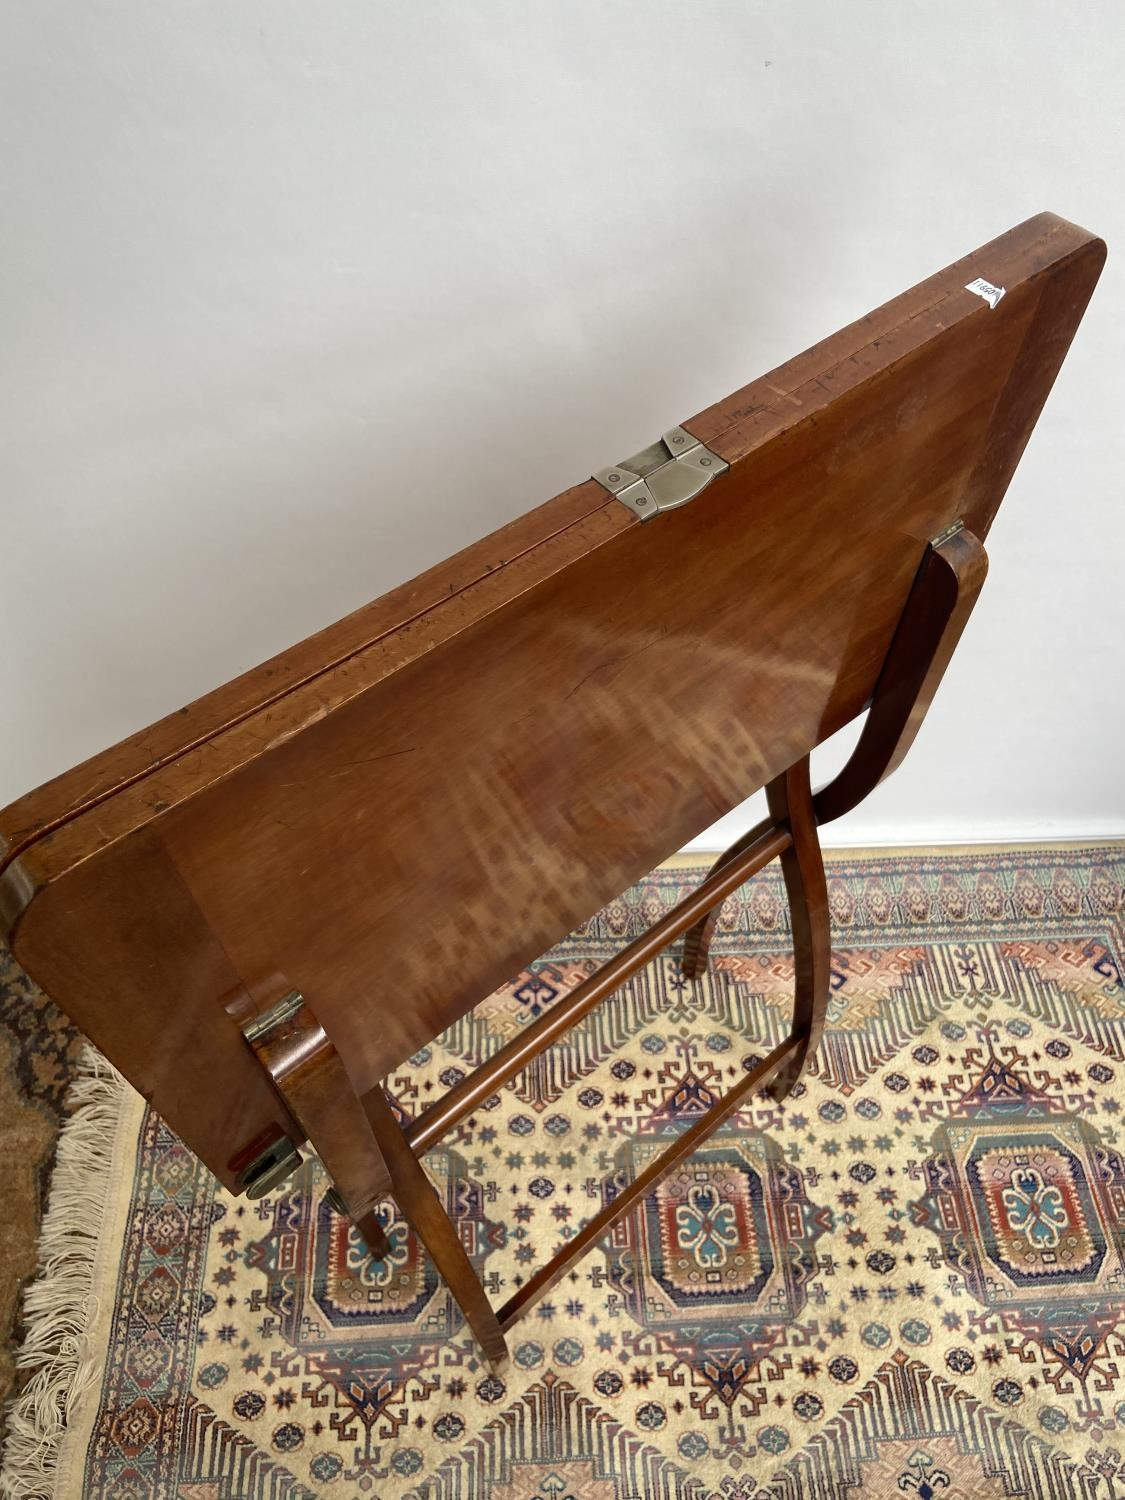 Antique Nawson Swan & Morgan folding card table/ writing table. [64cm in height, 75cm wide] - Image 5 of 6